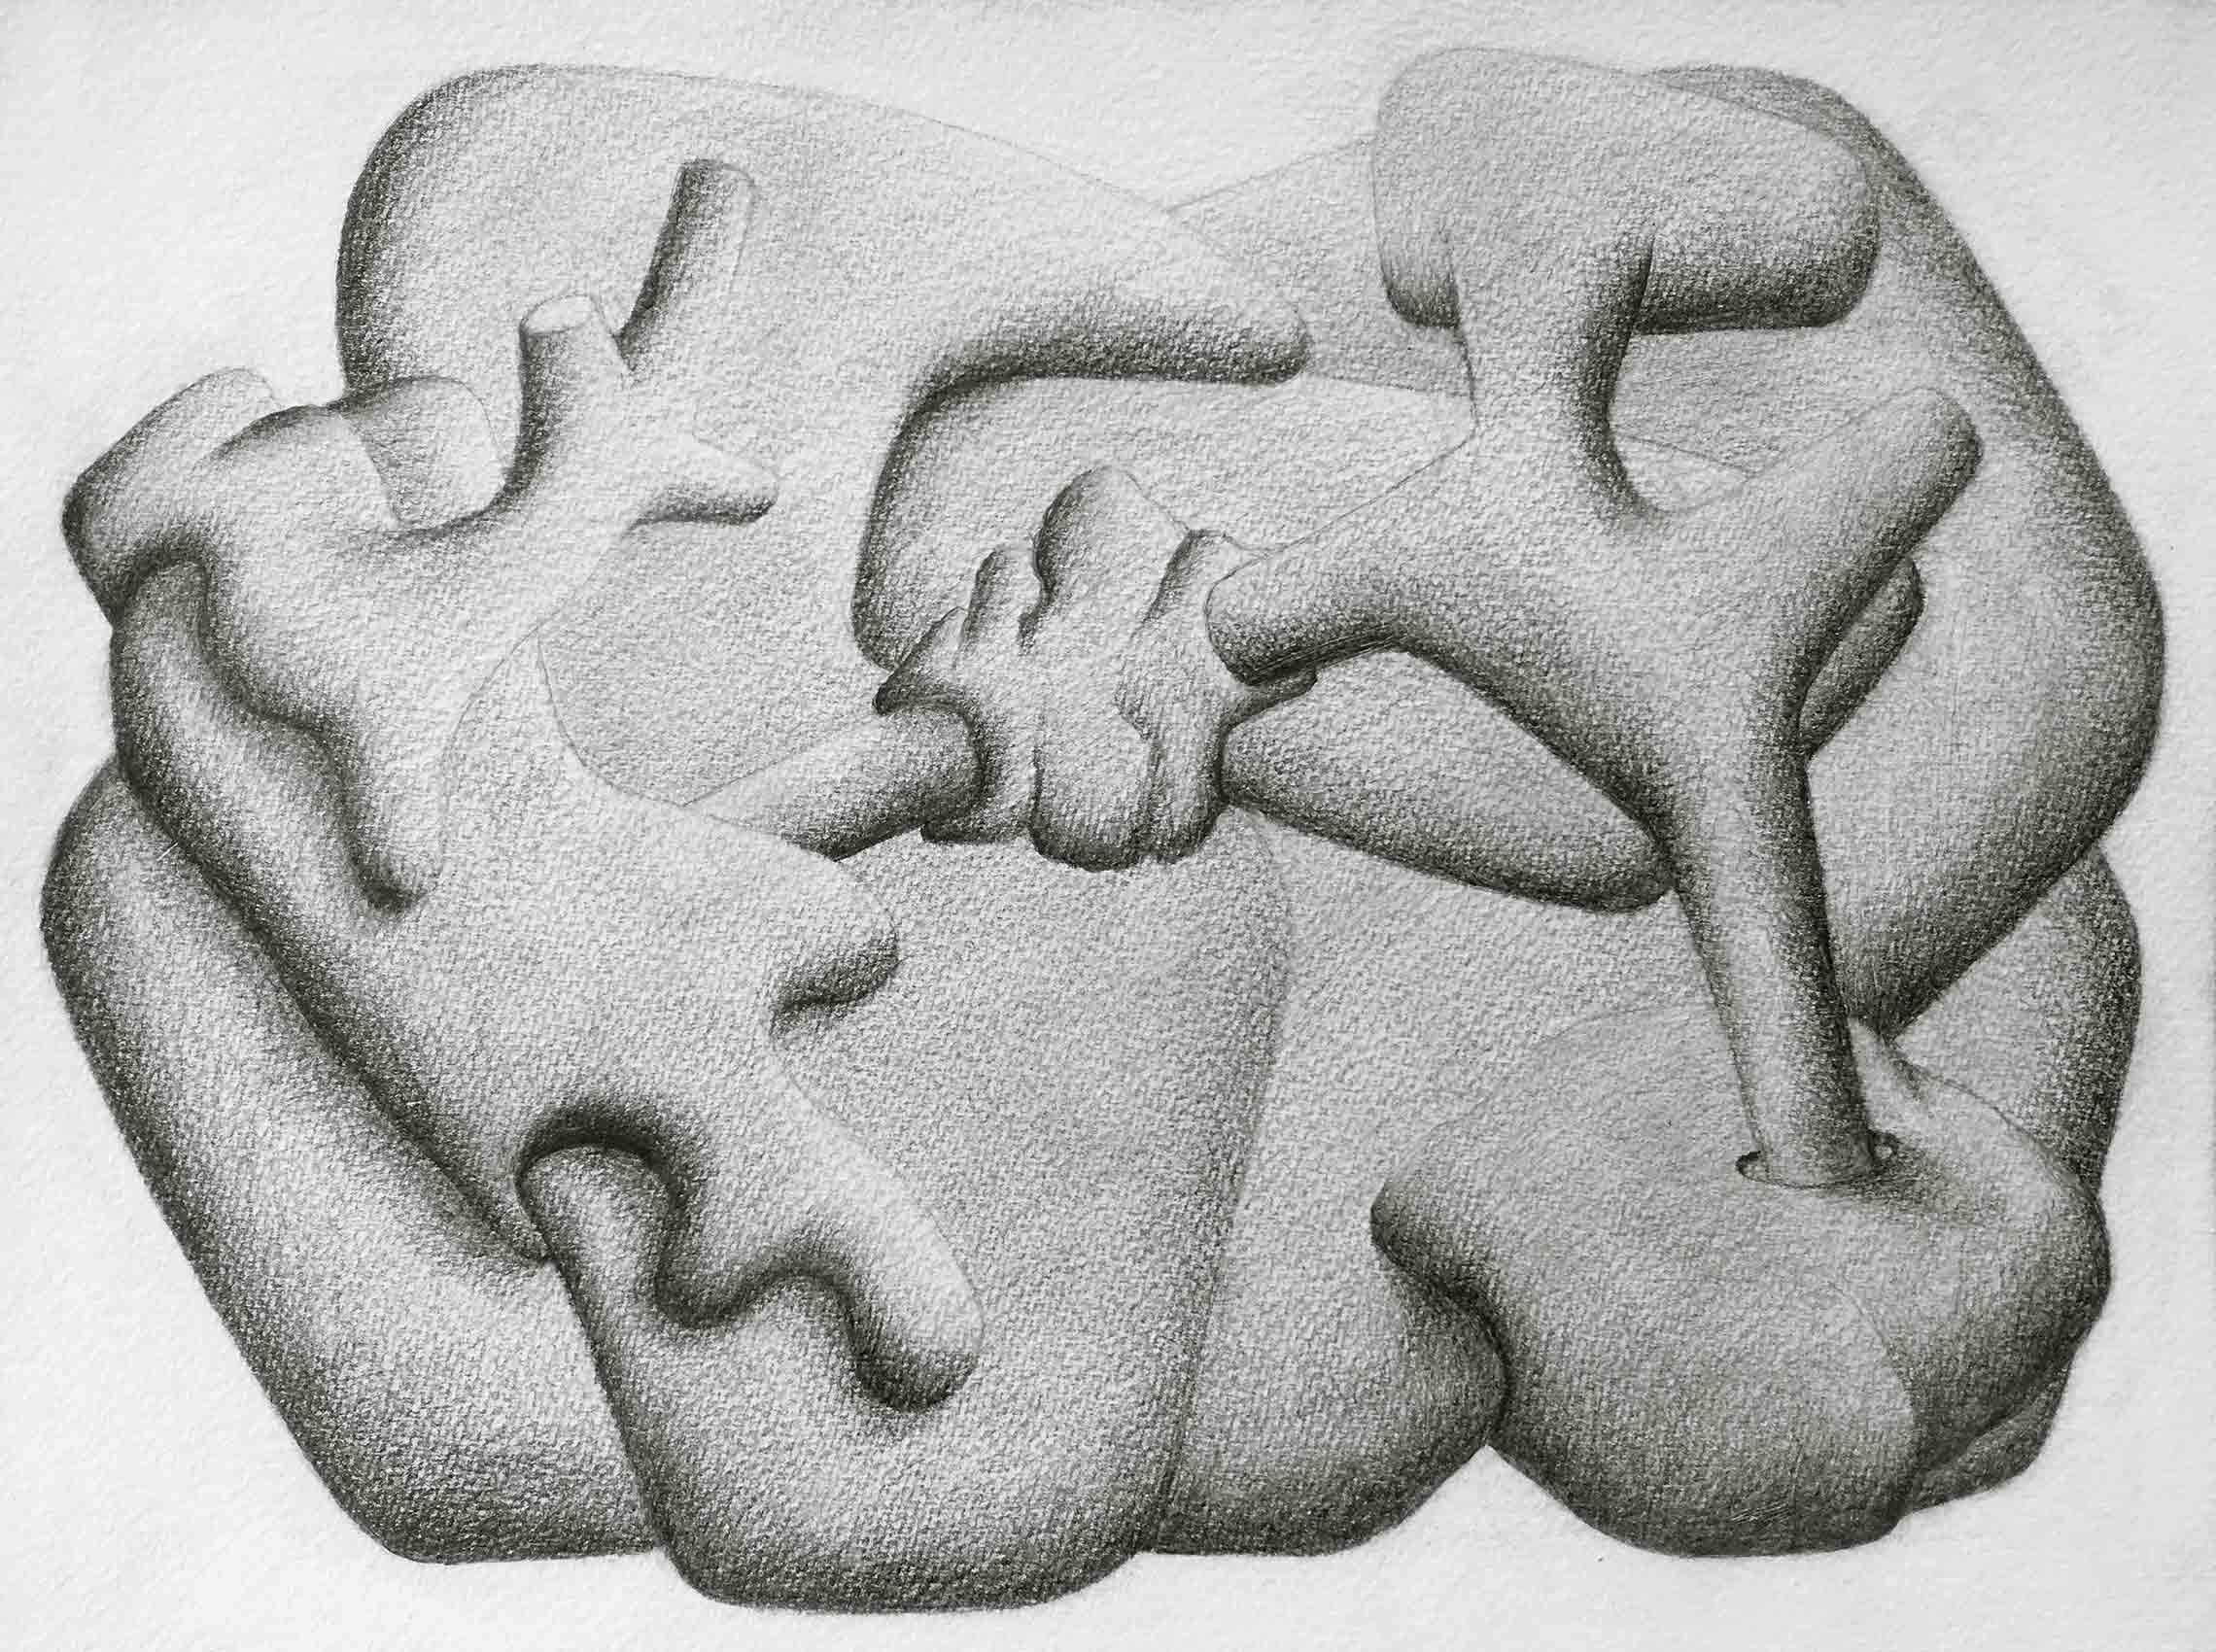 [No Title], N°DNT8, 2019, Pencil on paper, 24cm by 32cm, 2019 ©Pascal Demeester